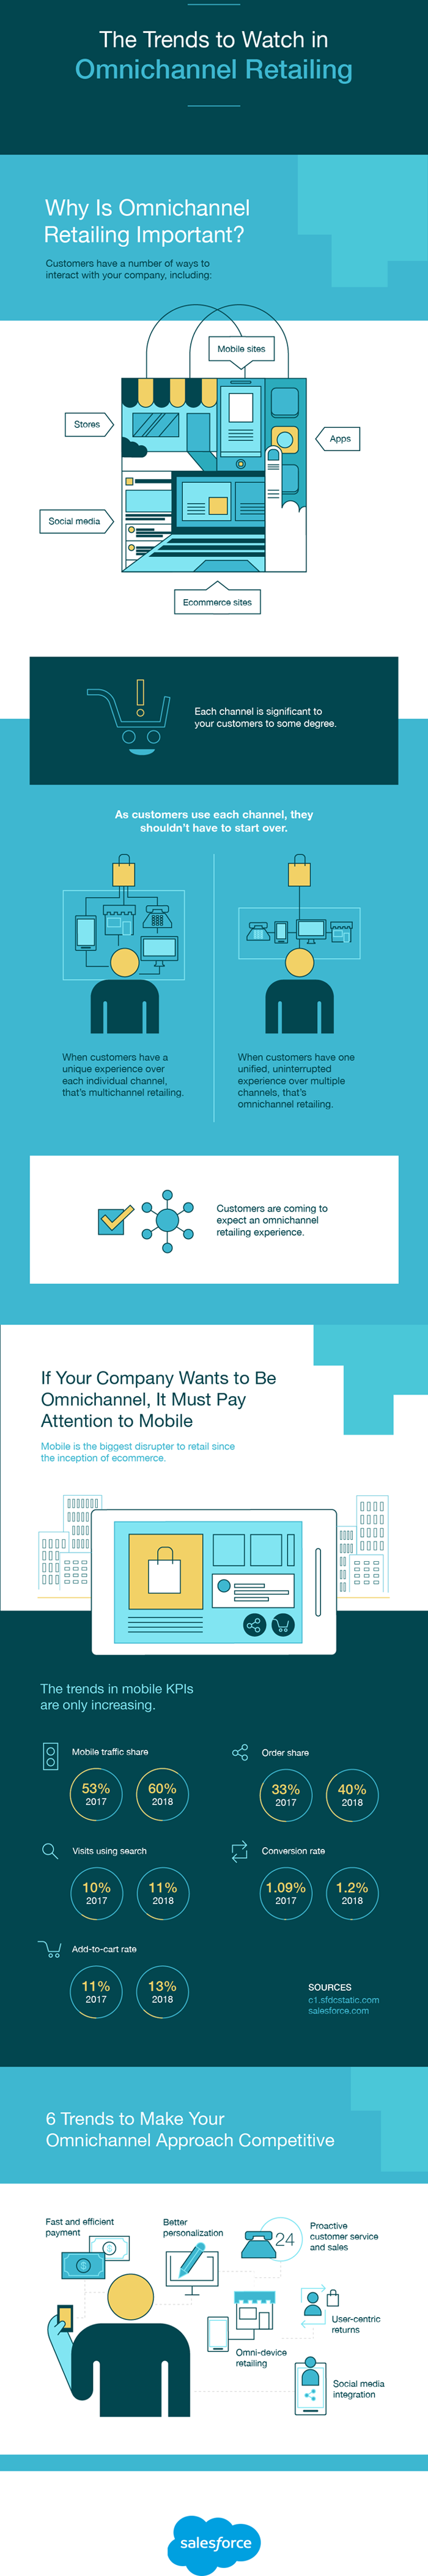 Omni-Channel Retail Trends Infographic